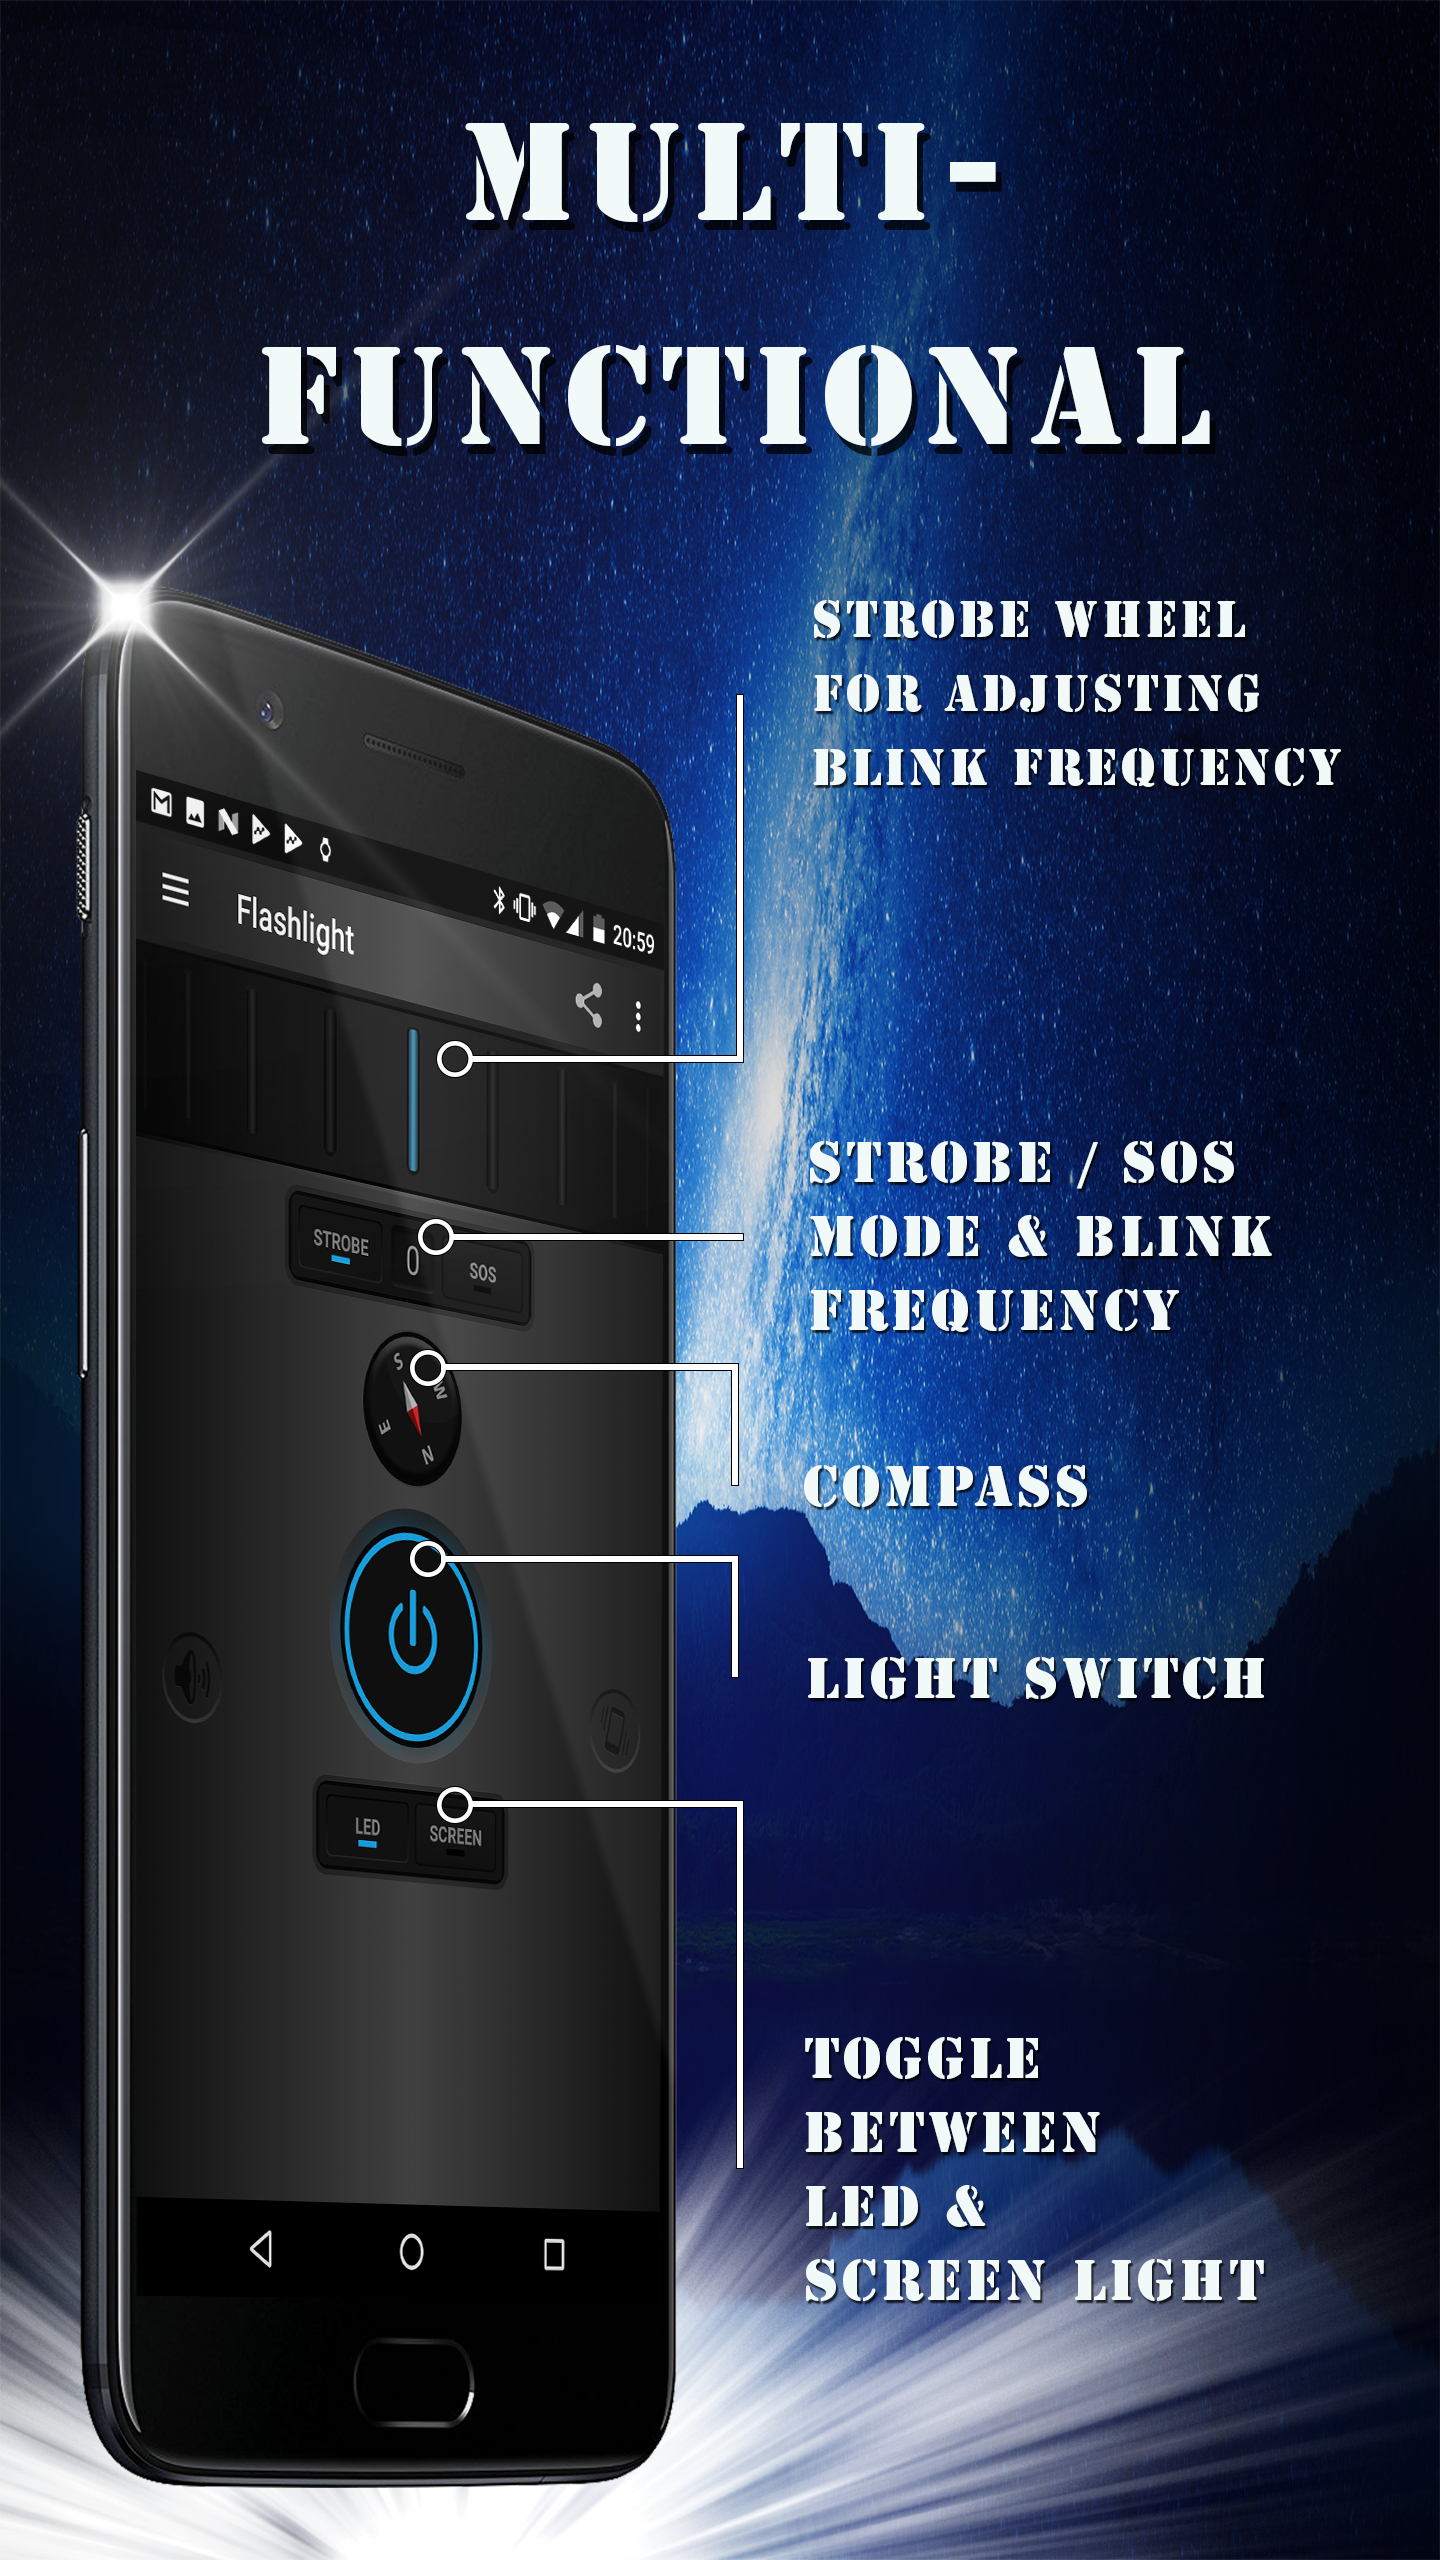 Multi-functional: strobe & SOS, magnetic compass, LED & screen light toggle